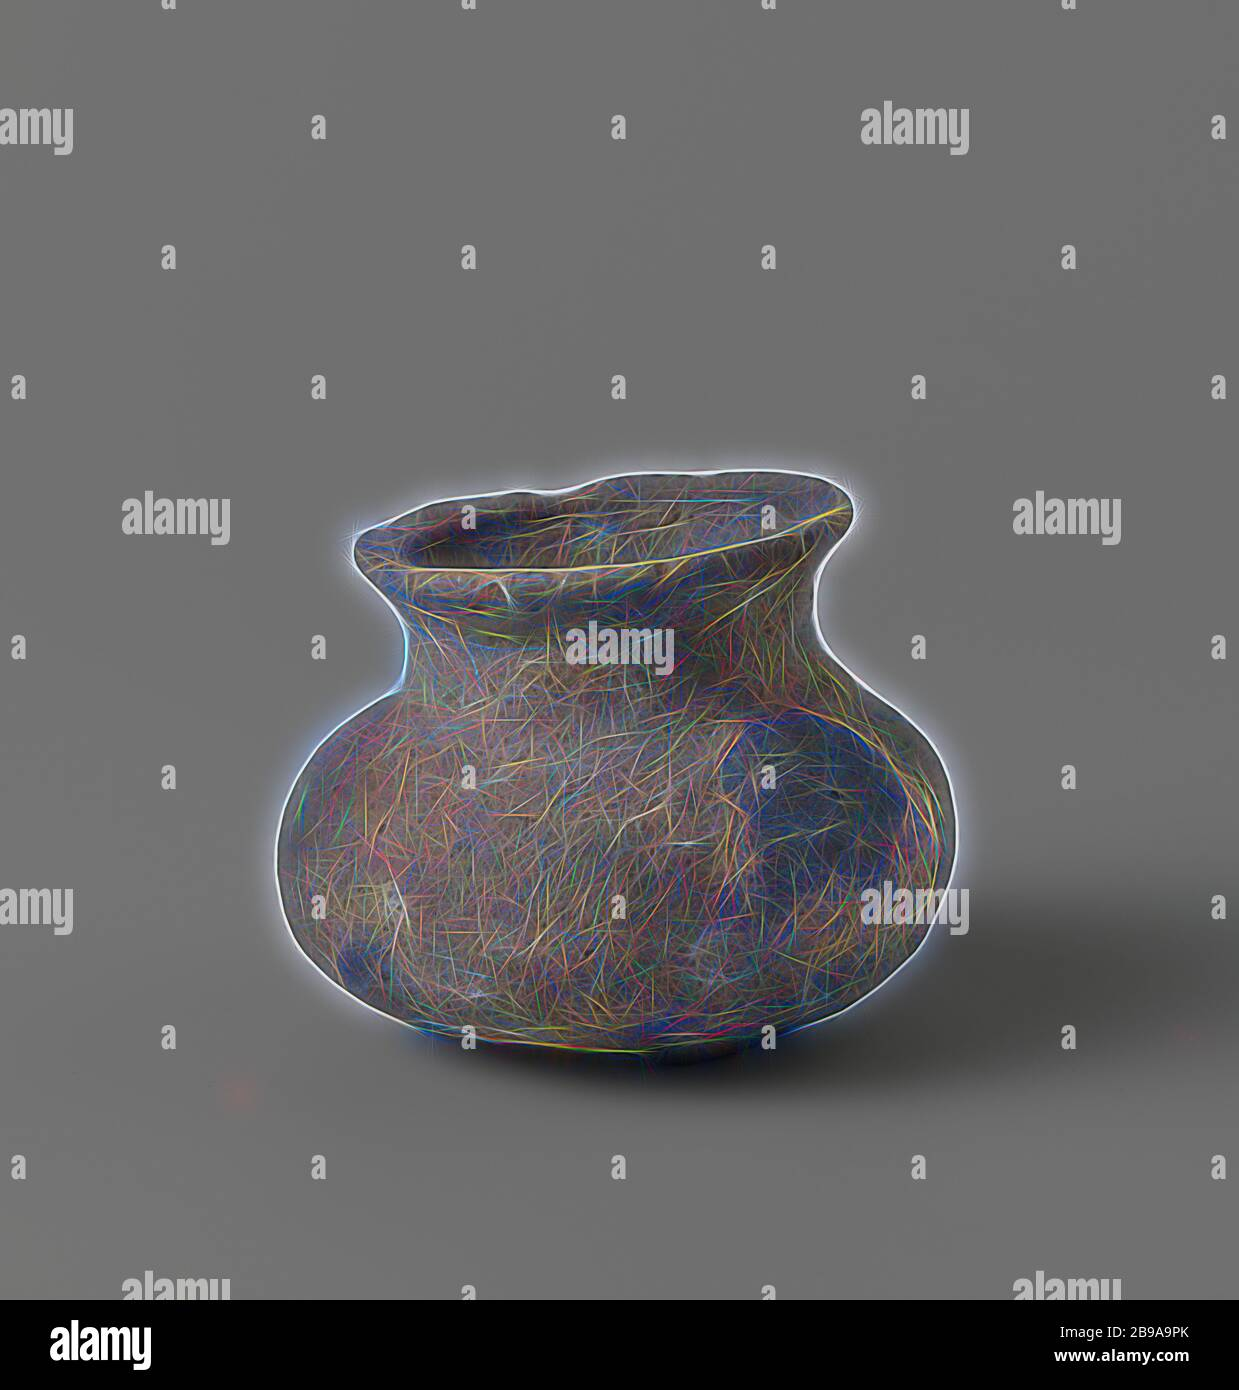 Pot, Pot with a round belly, constricted neck and bulging rim., anonymous, c. 1400 - c. 1950, earthenware, h 8 cm × d 11 cm, Reimagined by Gibon, design of warm cheerful glowing of brightness and light rays radiance. Classic art reinvented with a modern twist. Photography inspired by futurism, embracing dynamic energy of modern technology, movement, speed and revolutionize culture. Stock Photo